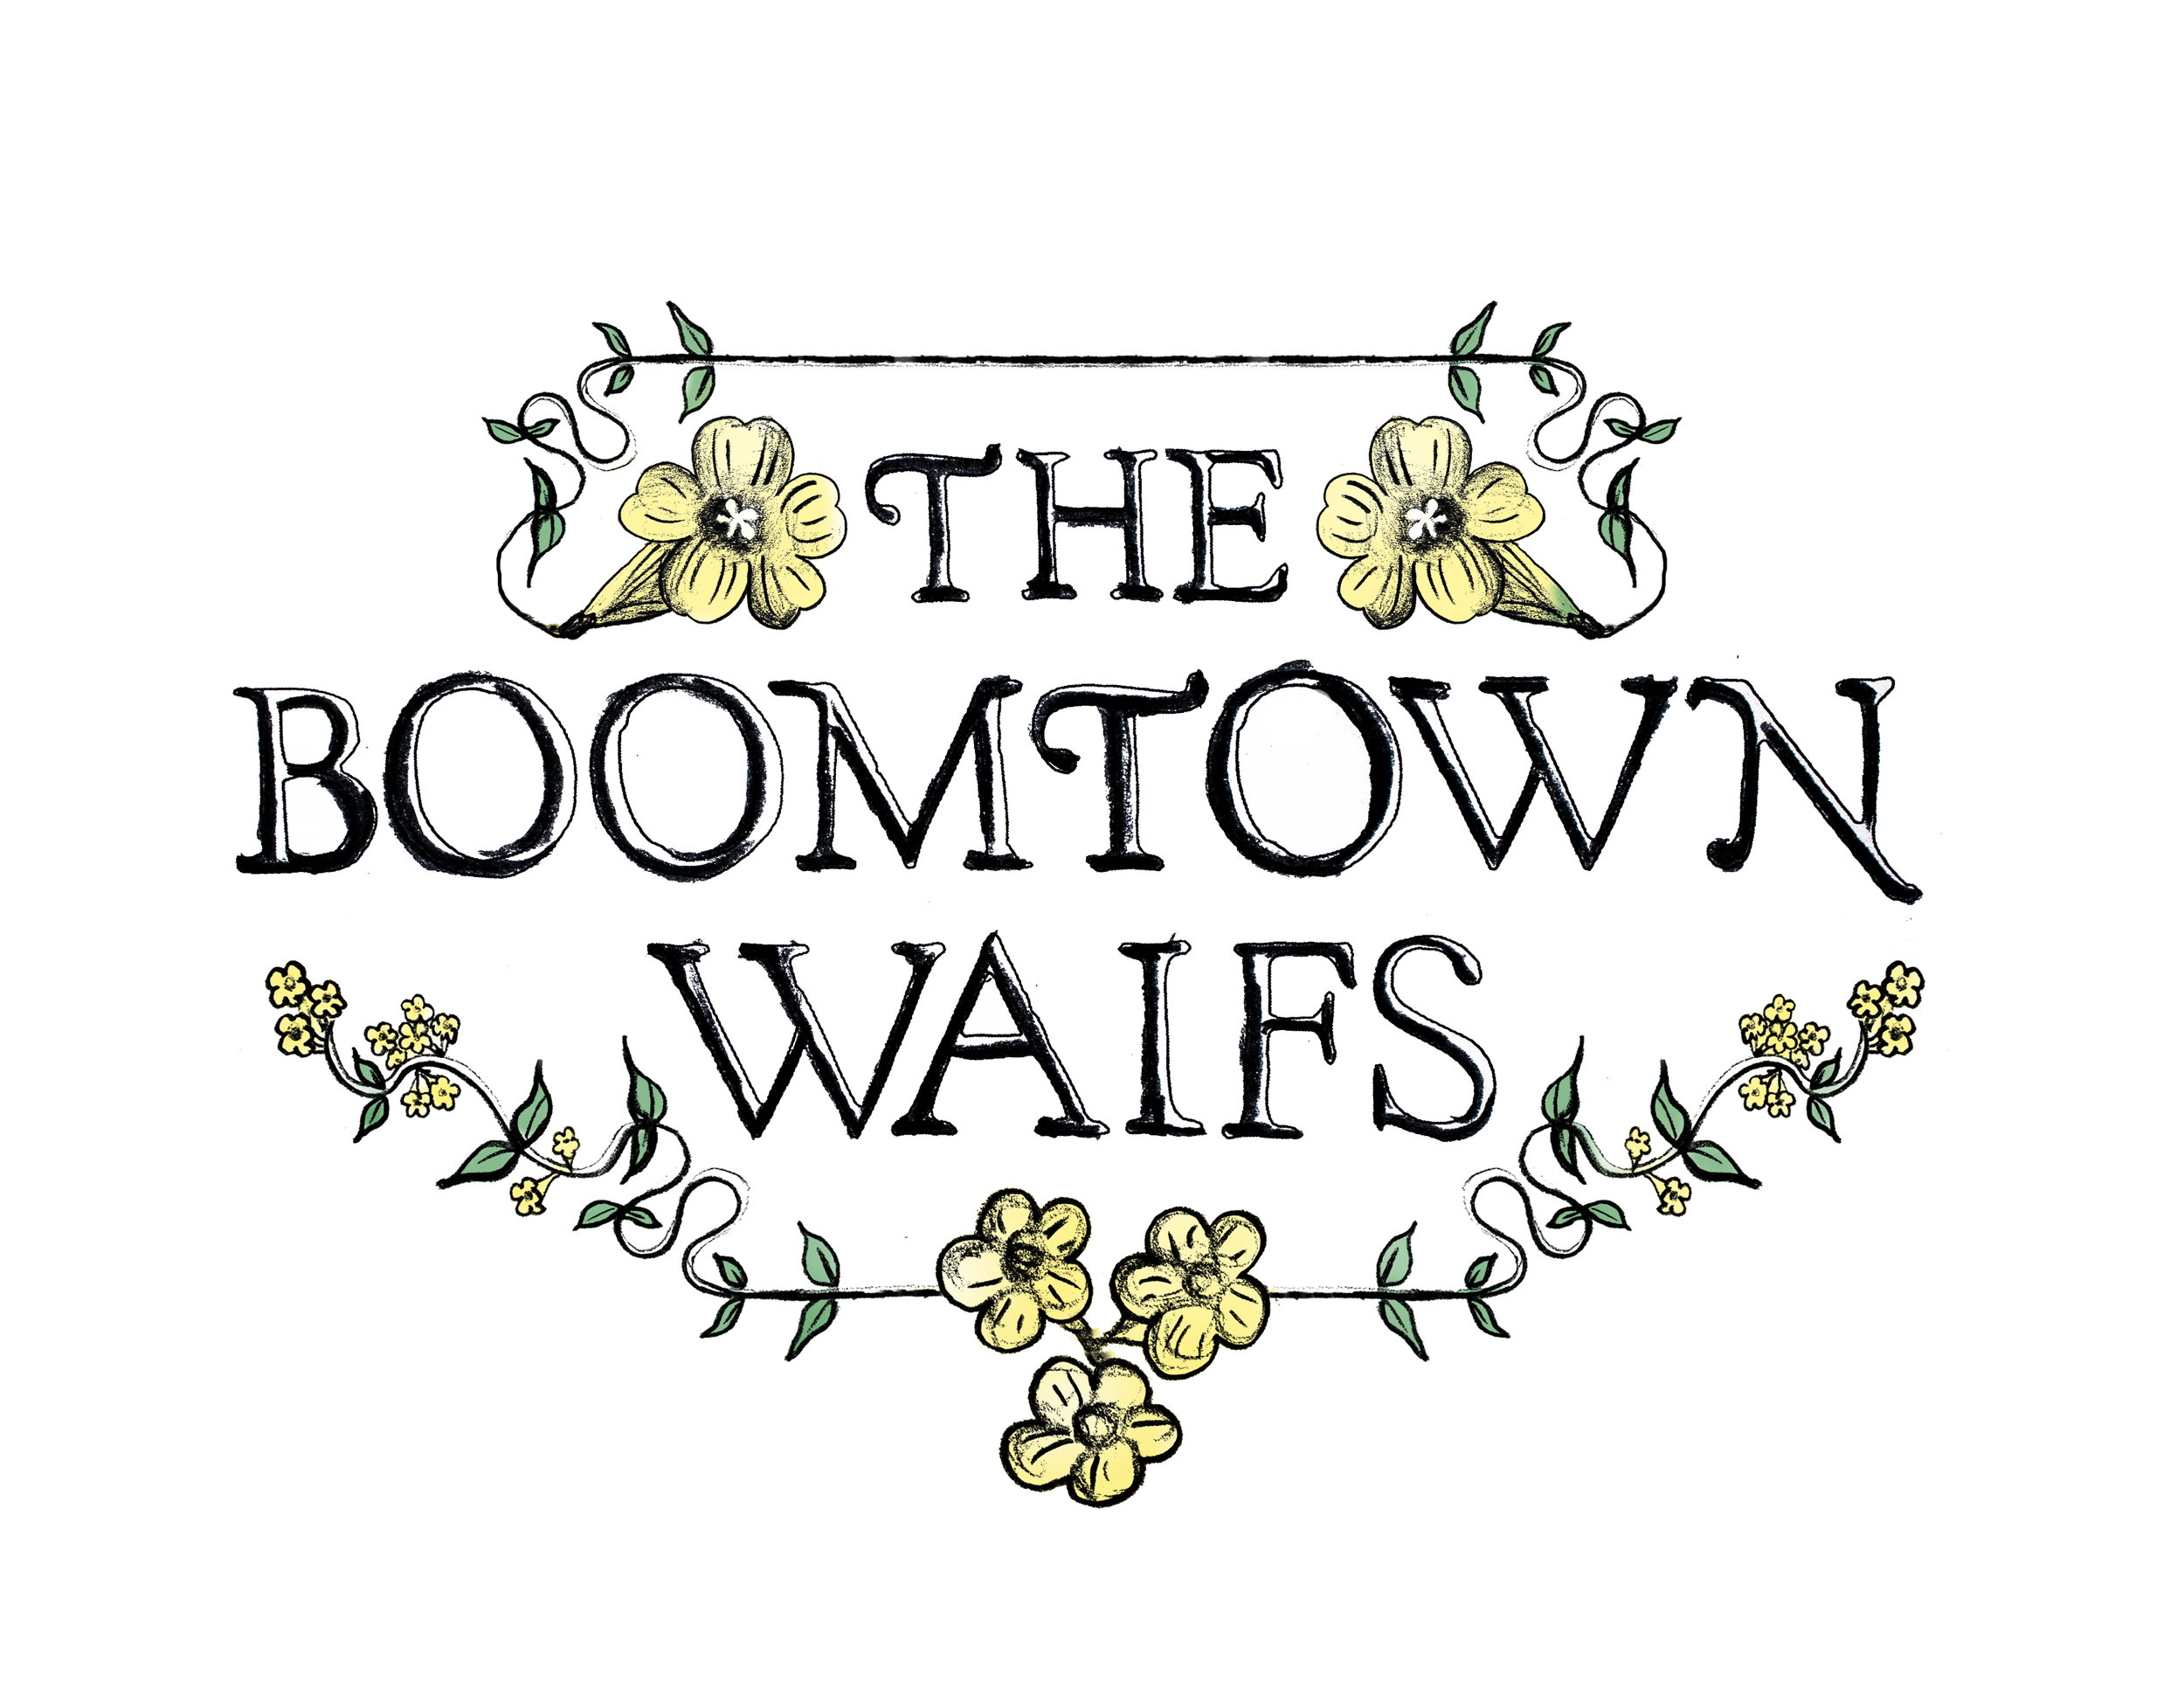 Boomtown waifs yellow.jpg